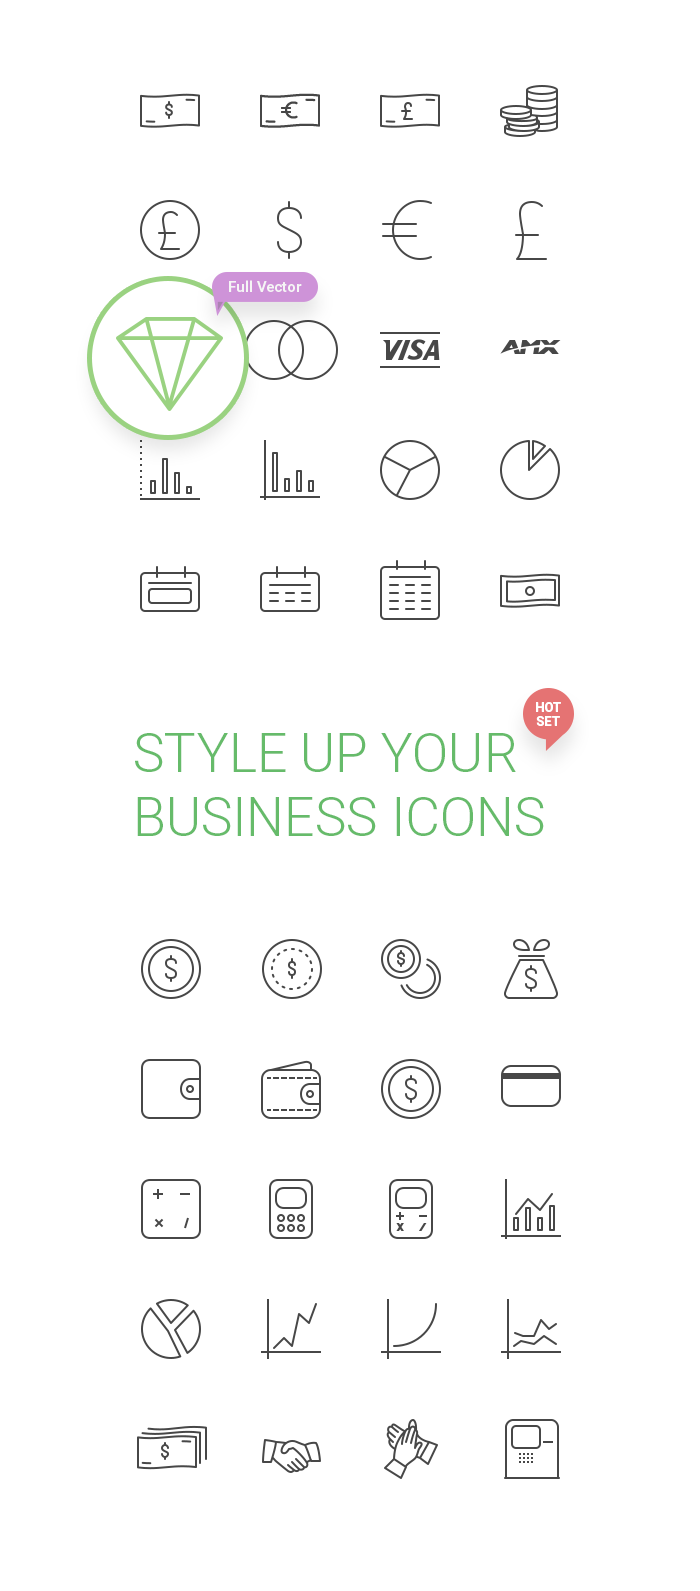 50 Free Business Icons by Creative Tail in 2015年3月的42套扁平化图标合集下载